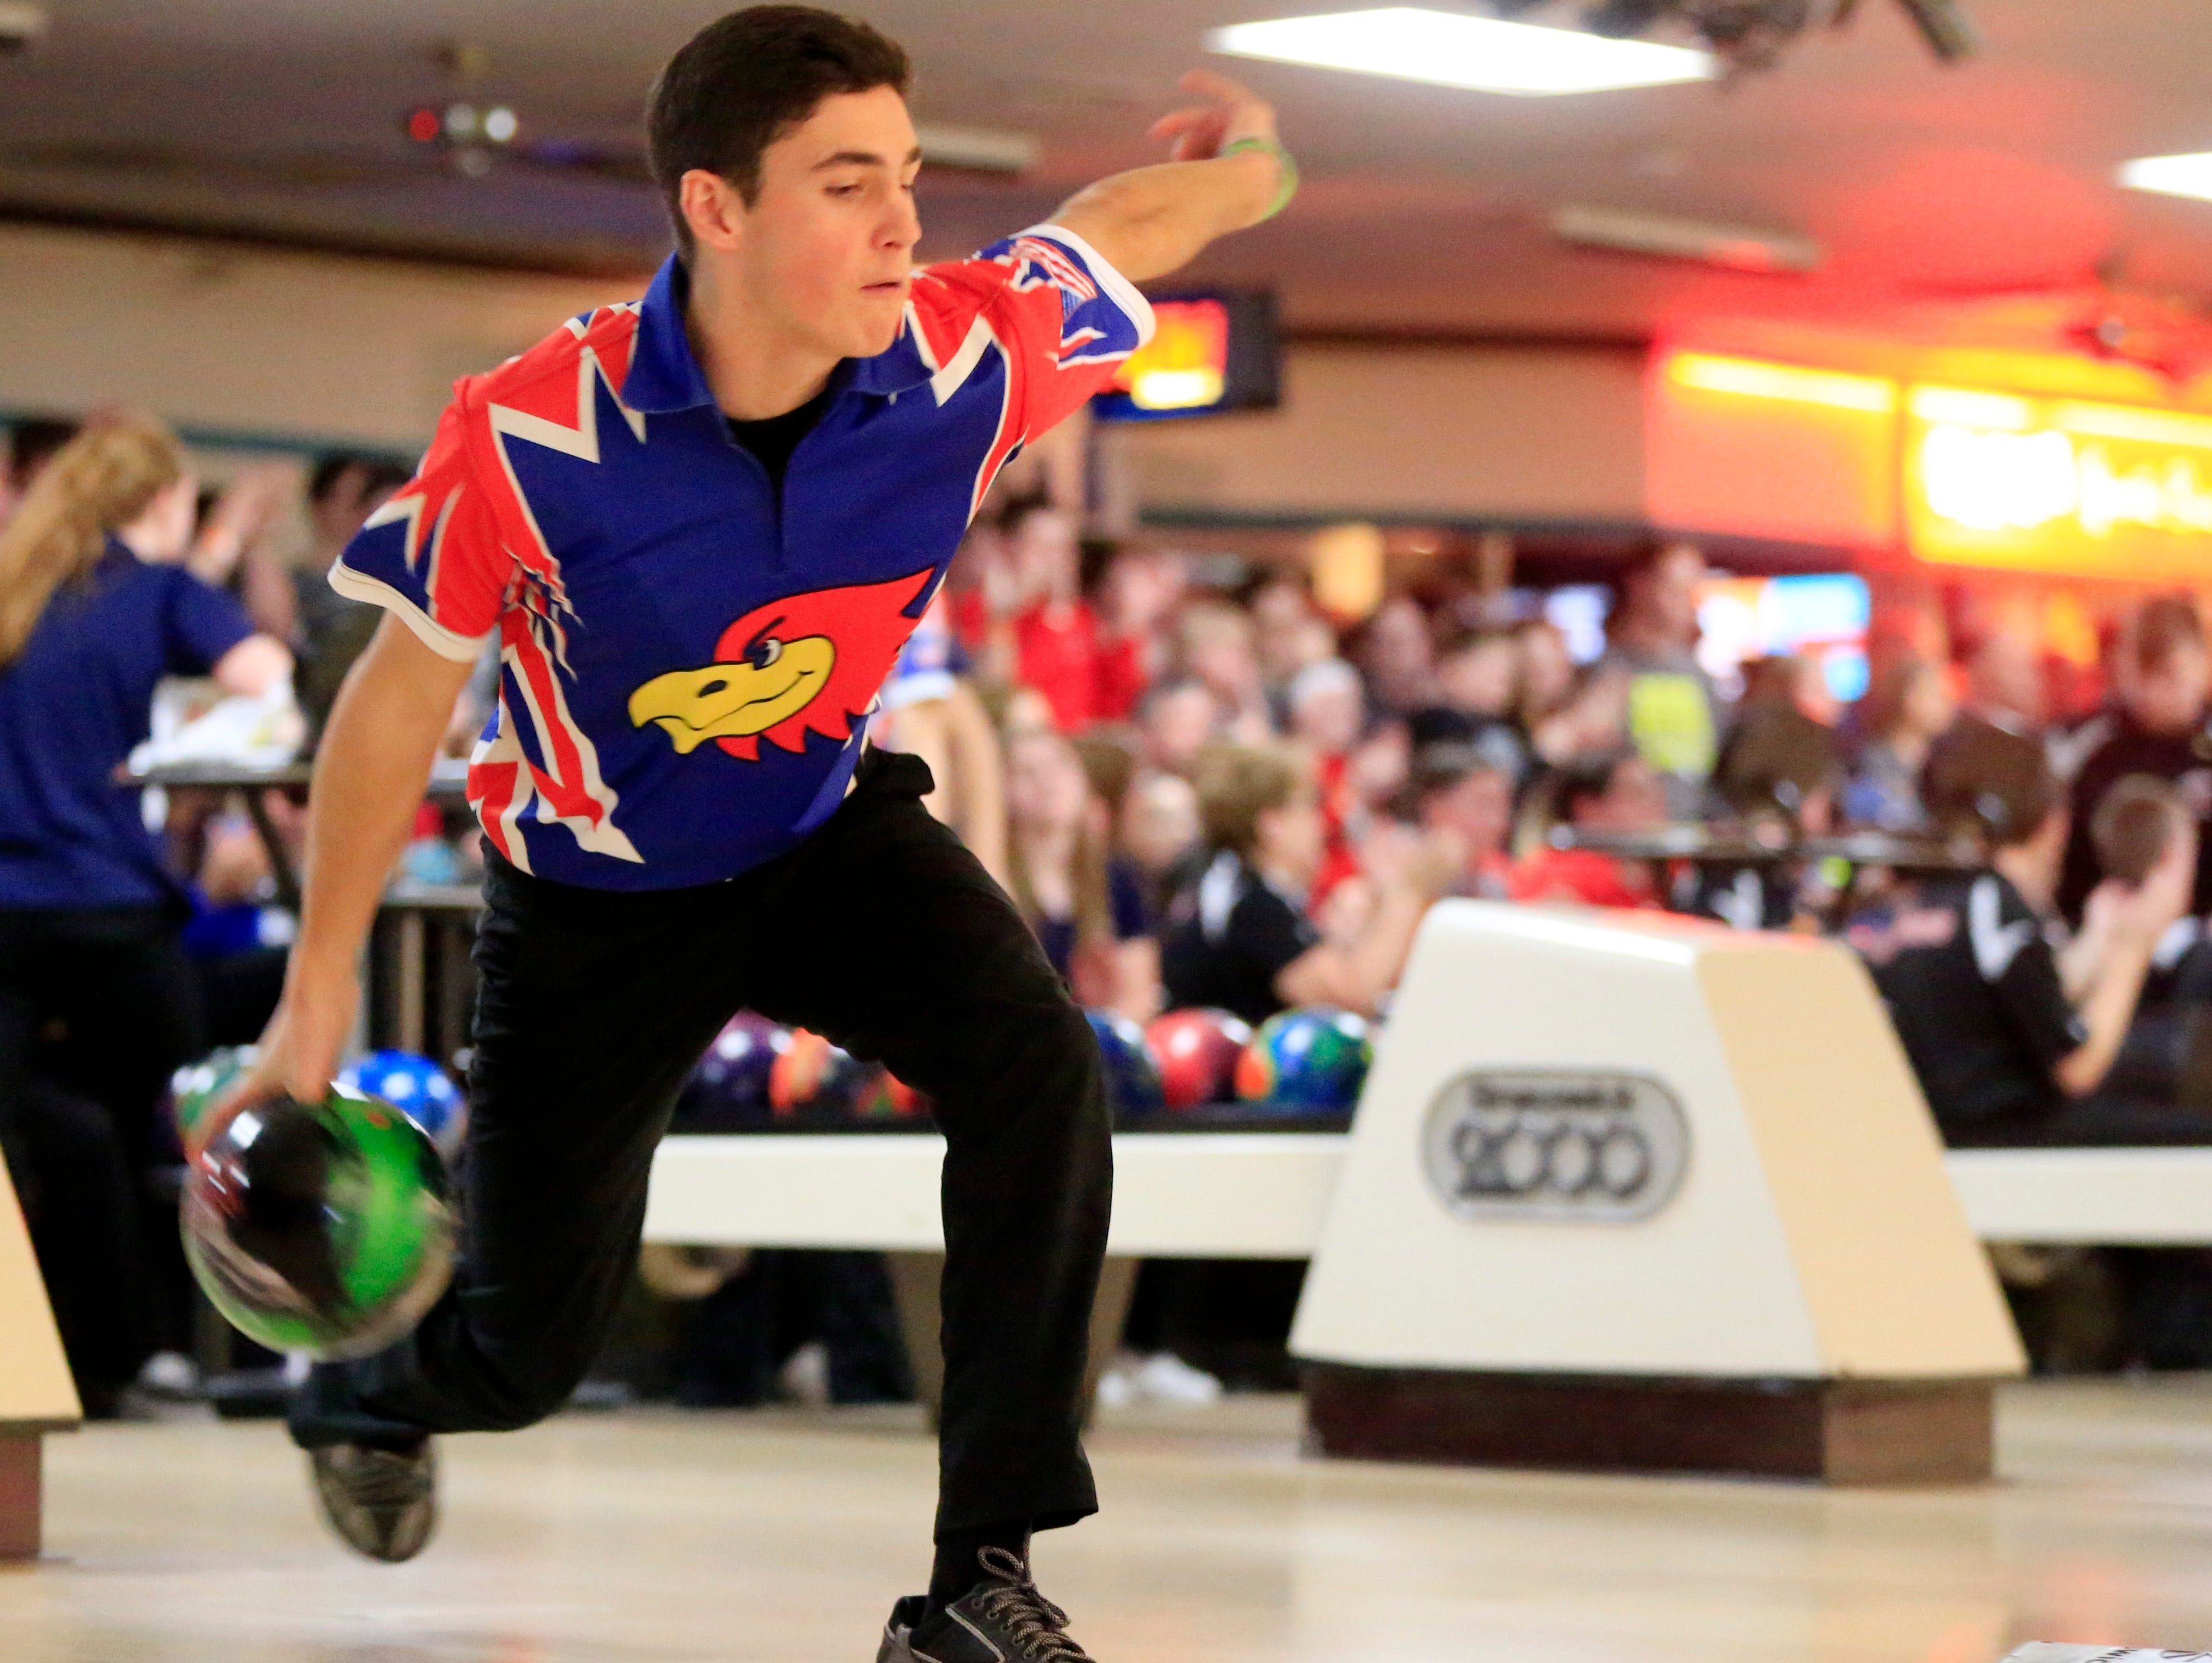 Alec Reseland of Urbandale bowls in the Iowa high school state bowling tournament Tuesday, Feb. 21, 2017.